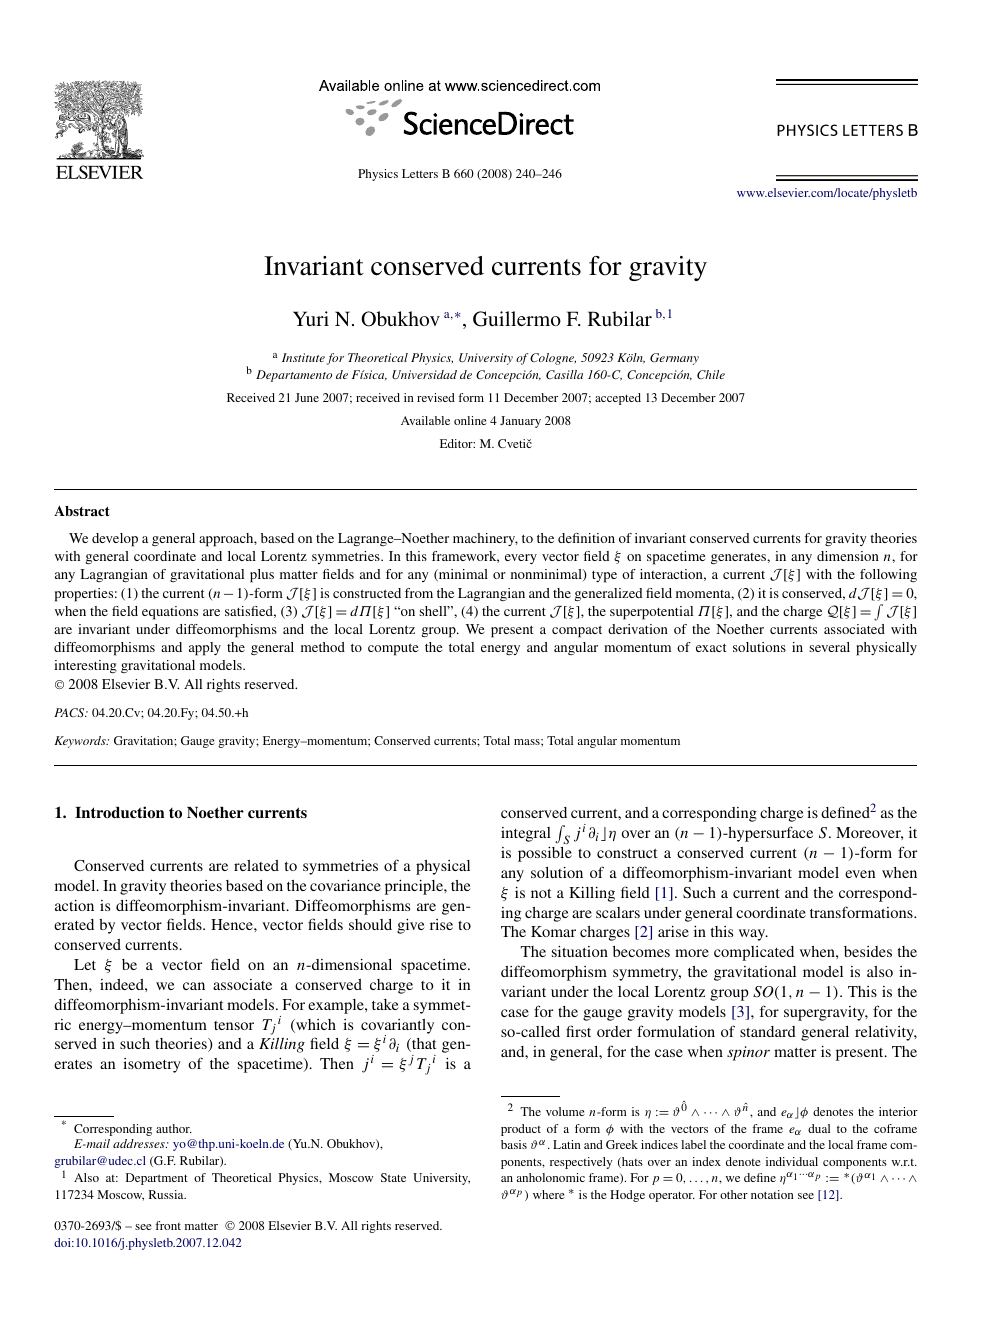 Invariant conserved currents for gravity – topic of research